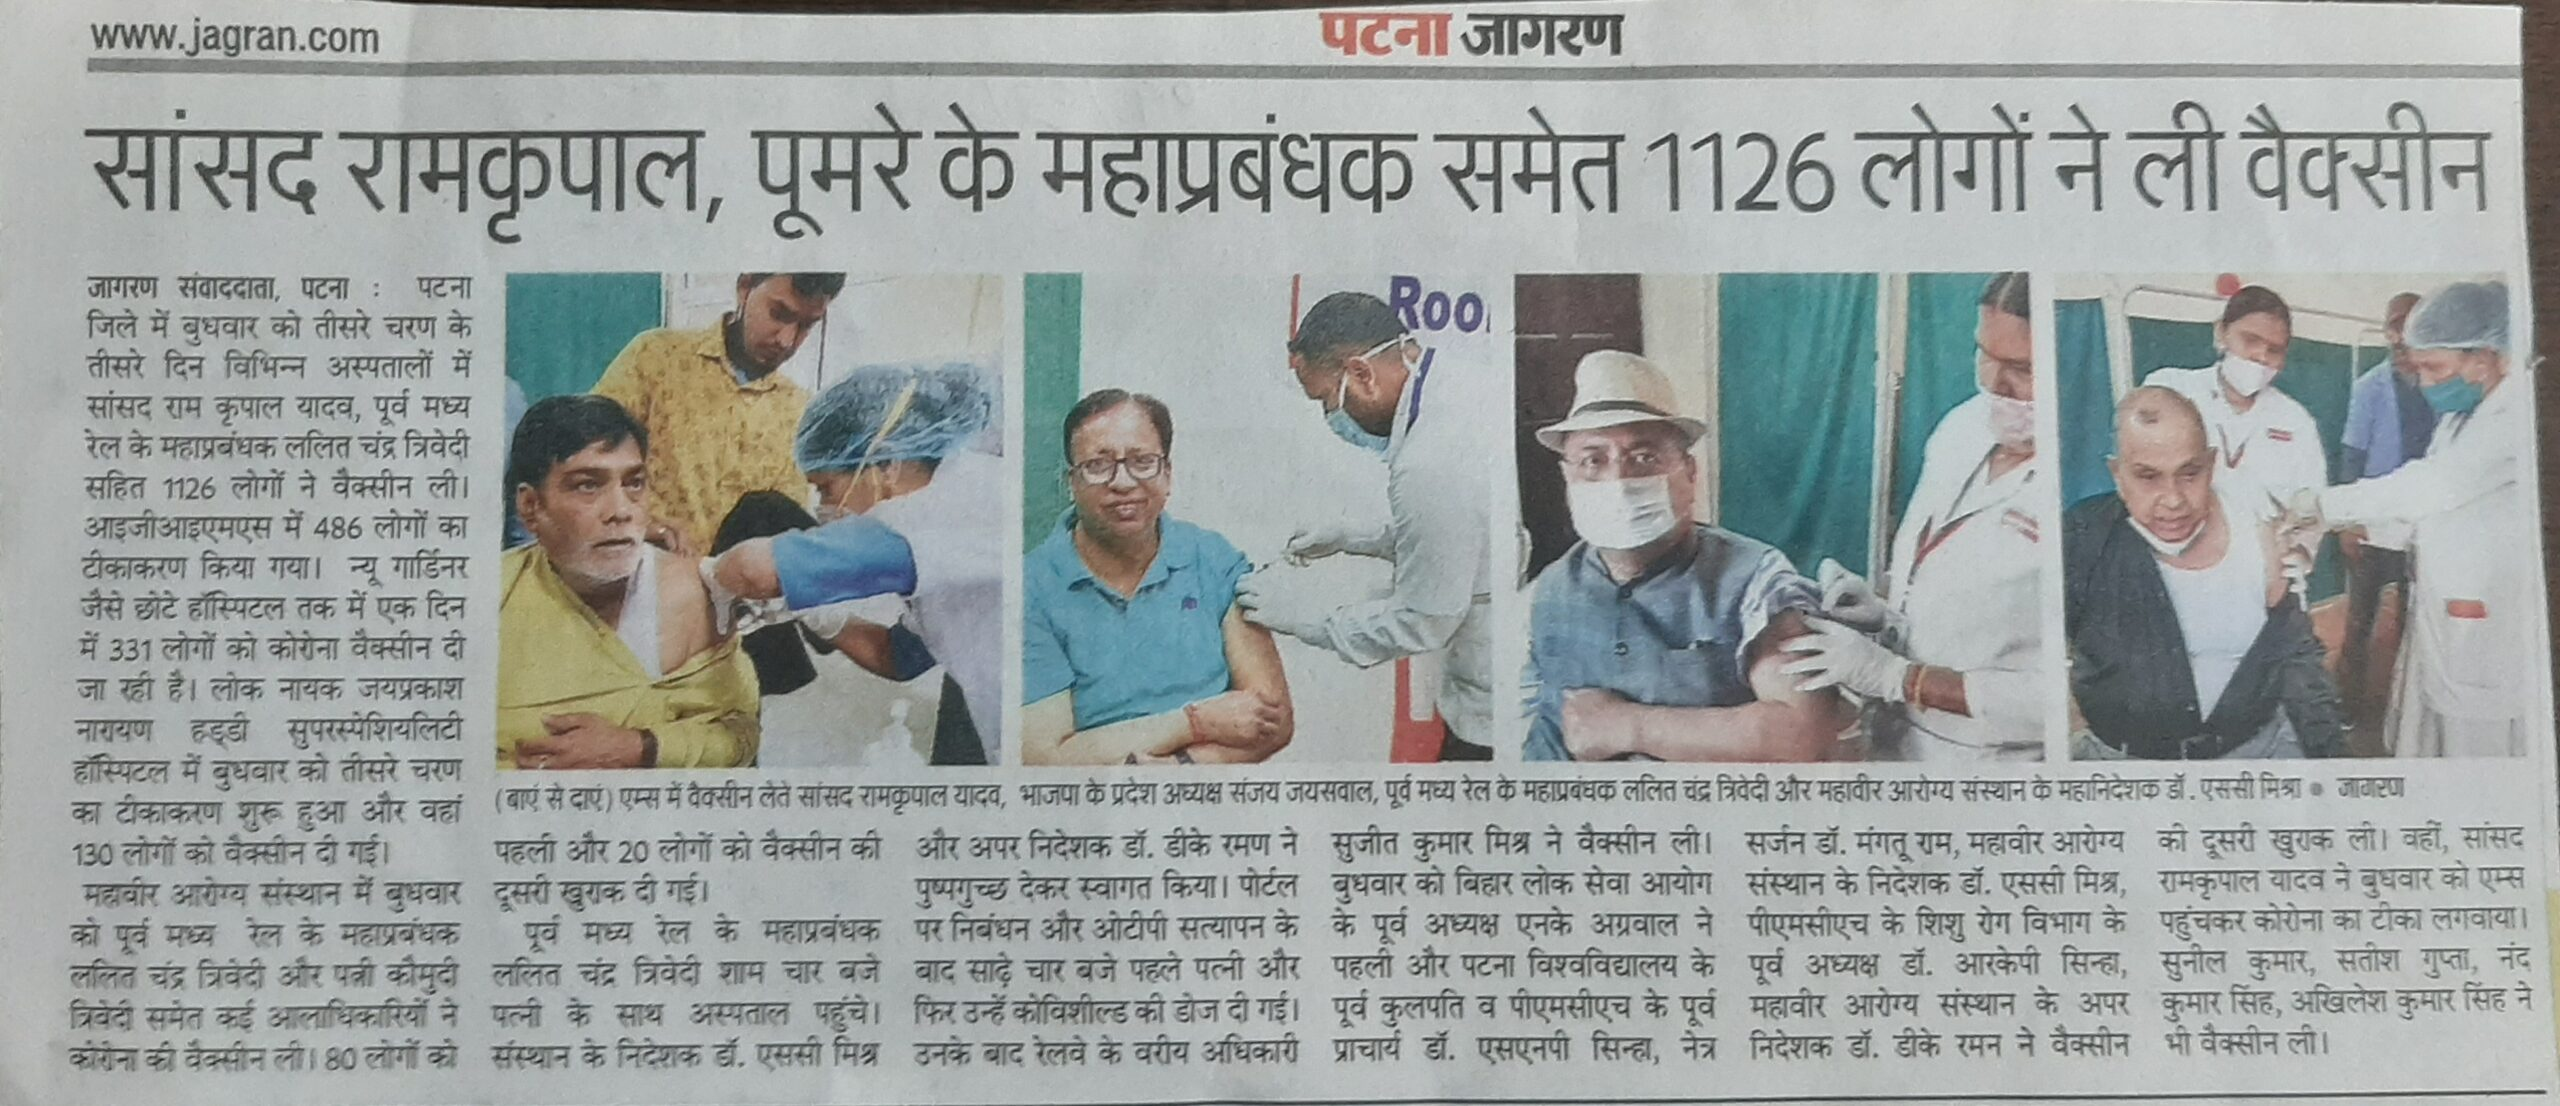 At the Mahavir Arogya Sansthan on Wednesday, several top officials took the Kovid vaccine.